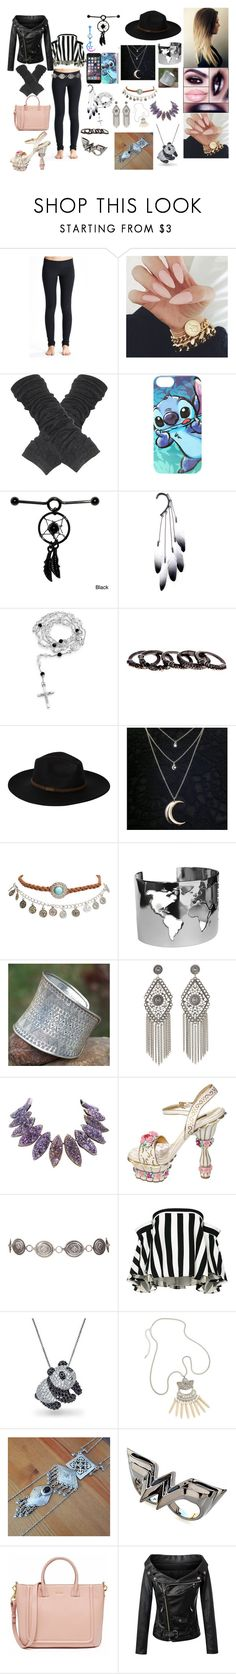 """Saving my friend/sister"" by gatorgurl91 ❤ liked on Polyvore featuring Disney, Anni Jürgenson, Bling Jewelry, Free Press, Billabong, Wet Seal, Artelier by Cristina Ramella, NOVICA, R.J. Graziano and Dolce&Gabbana"